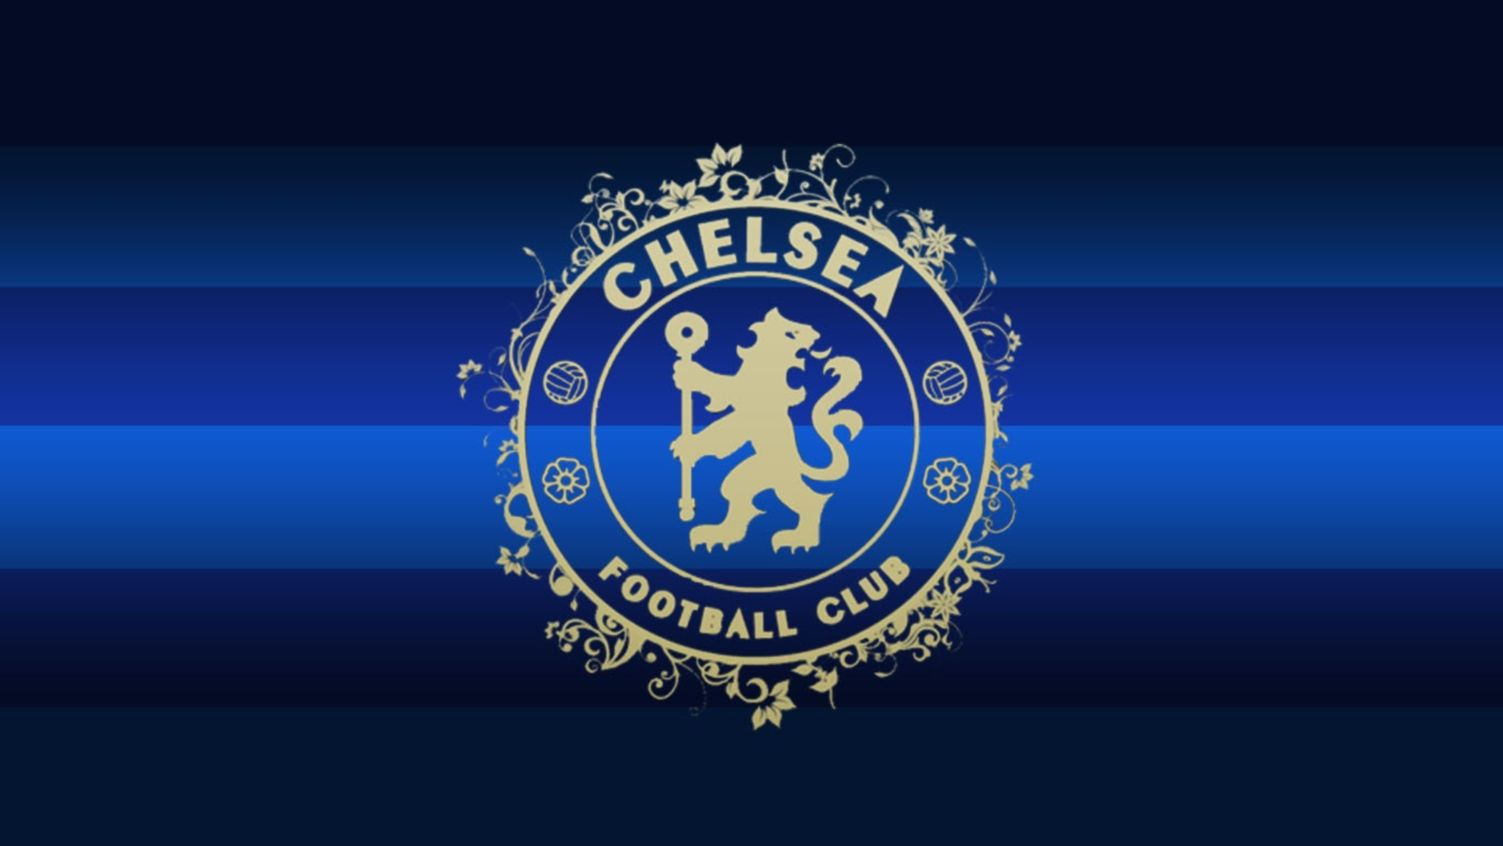 Download free HD Chelsea Blue Logo HD 2015 Wallpaper, image